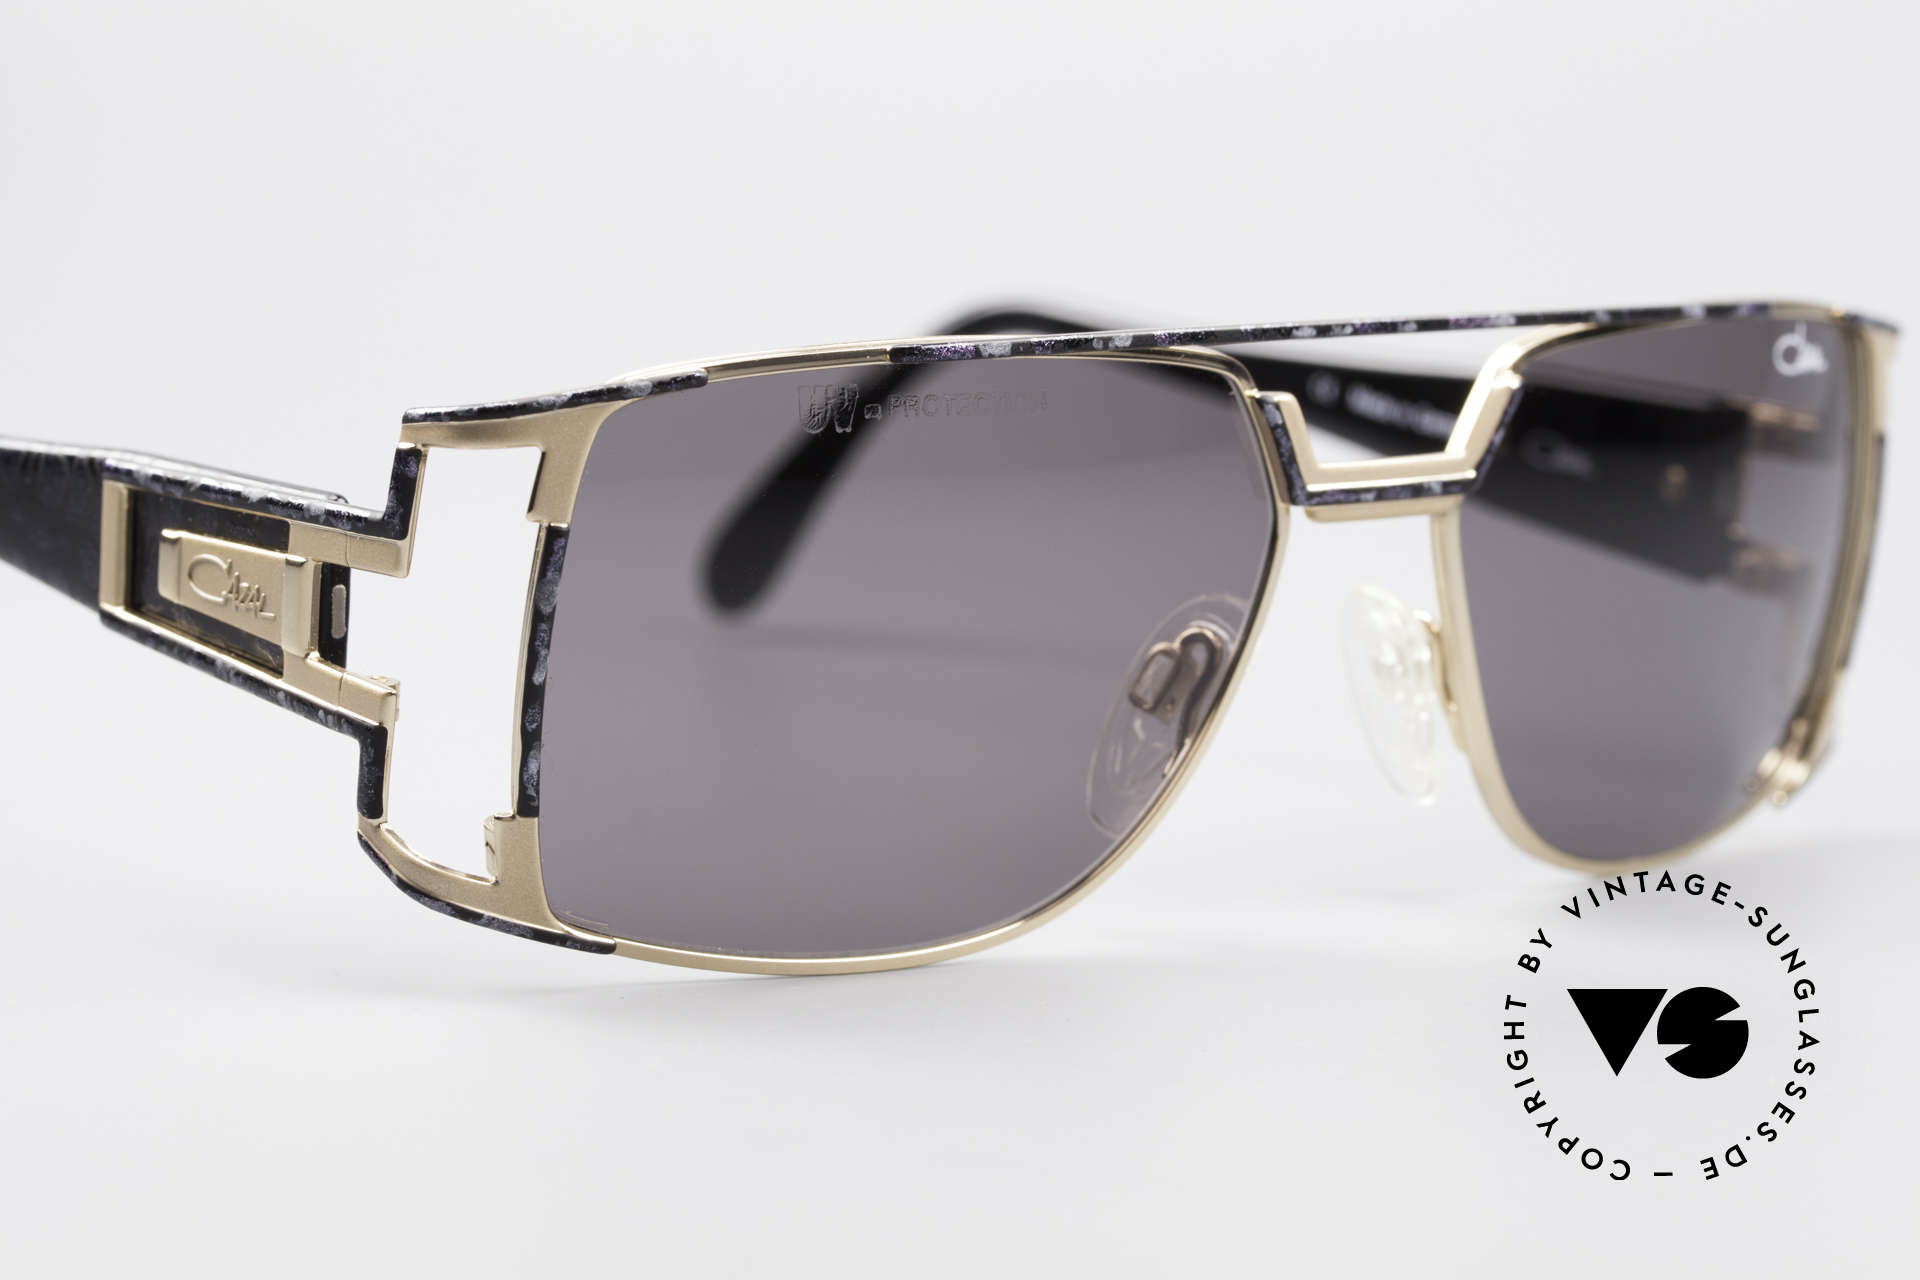 Cazal 974 Unisex Shades Ladies Men, unworn, NOS (like all our rare vintage CAZAL eyewear), Made for Men and Women